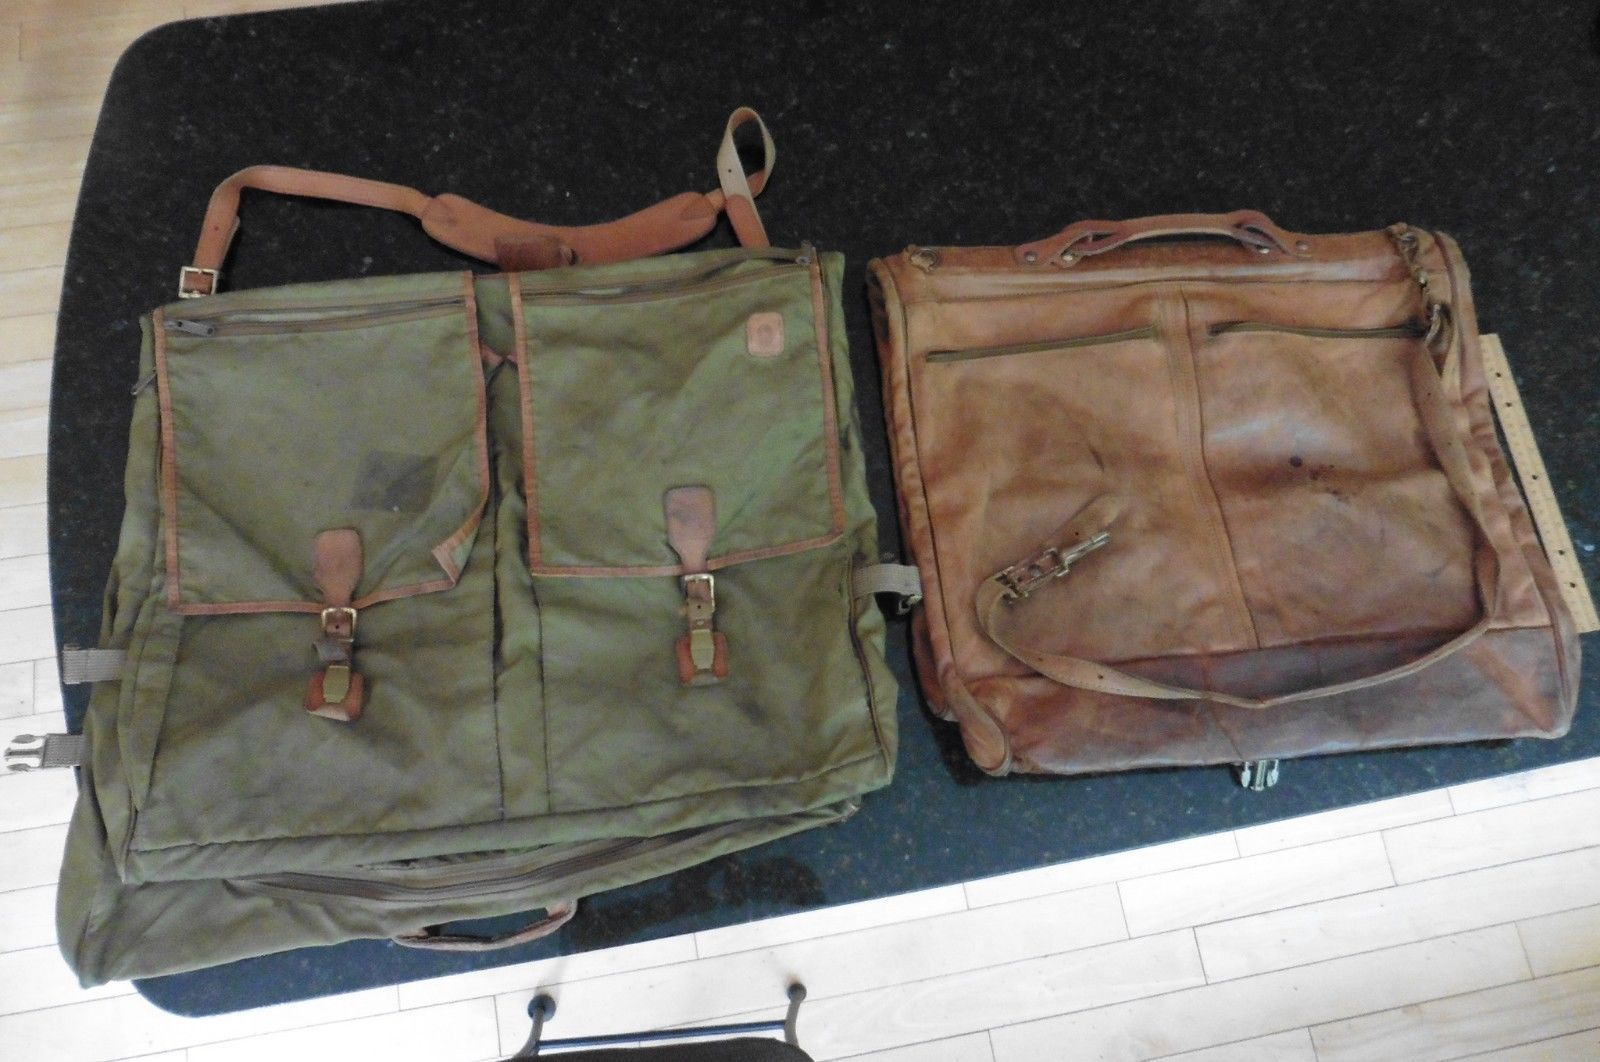 a94616765262 57. 57. Previous. 2 Vintage Hartmann Belting Nylon   Leather Garment  Luggage Travel Suit bags